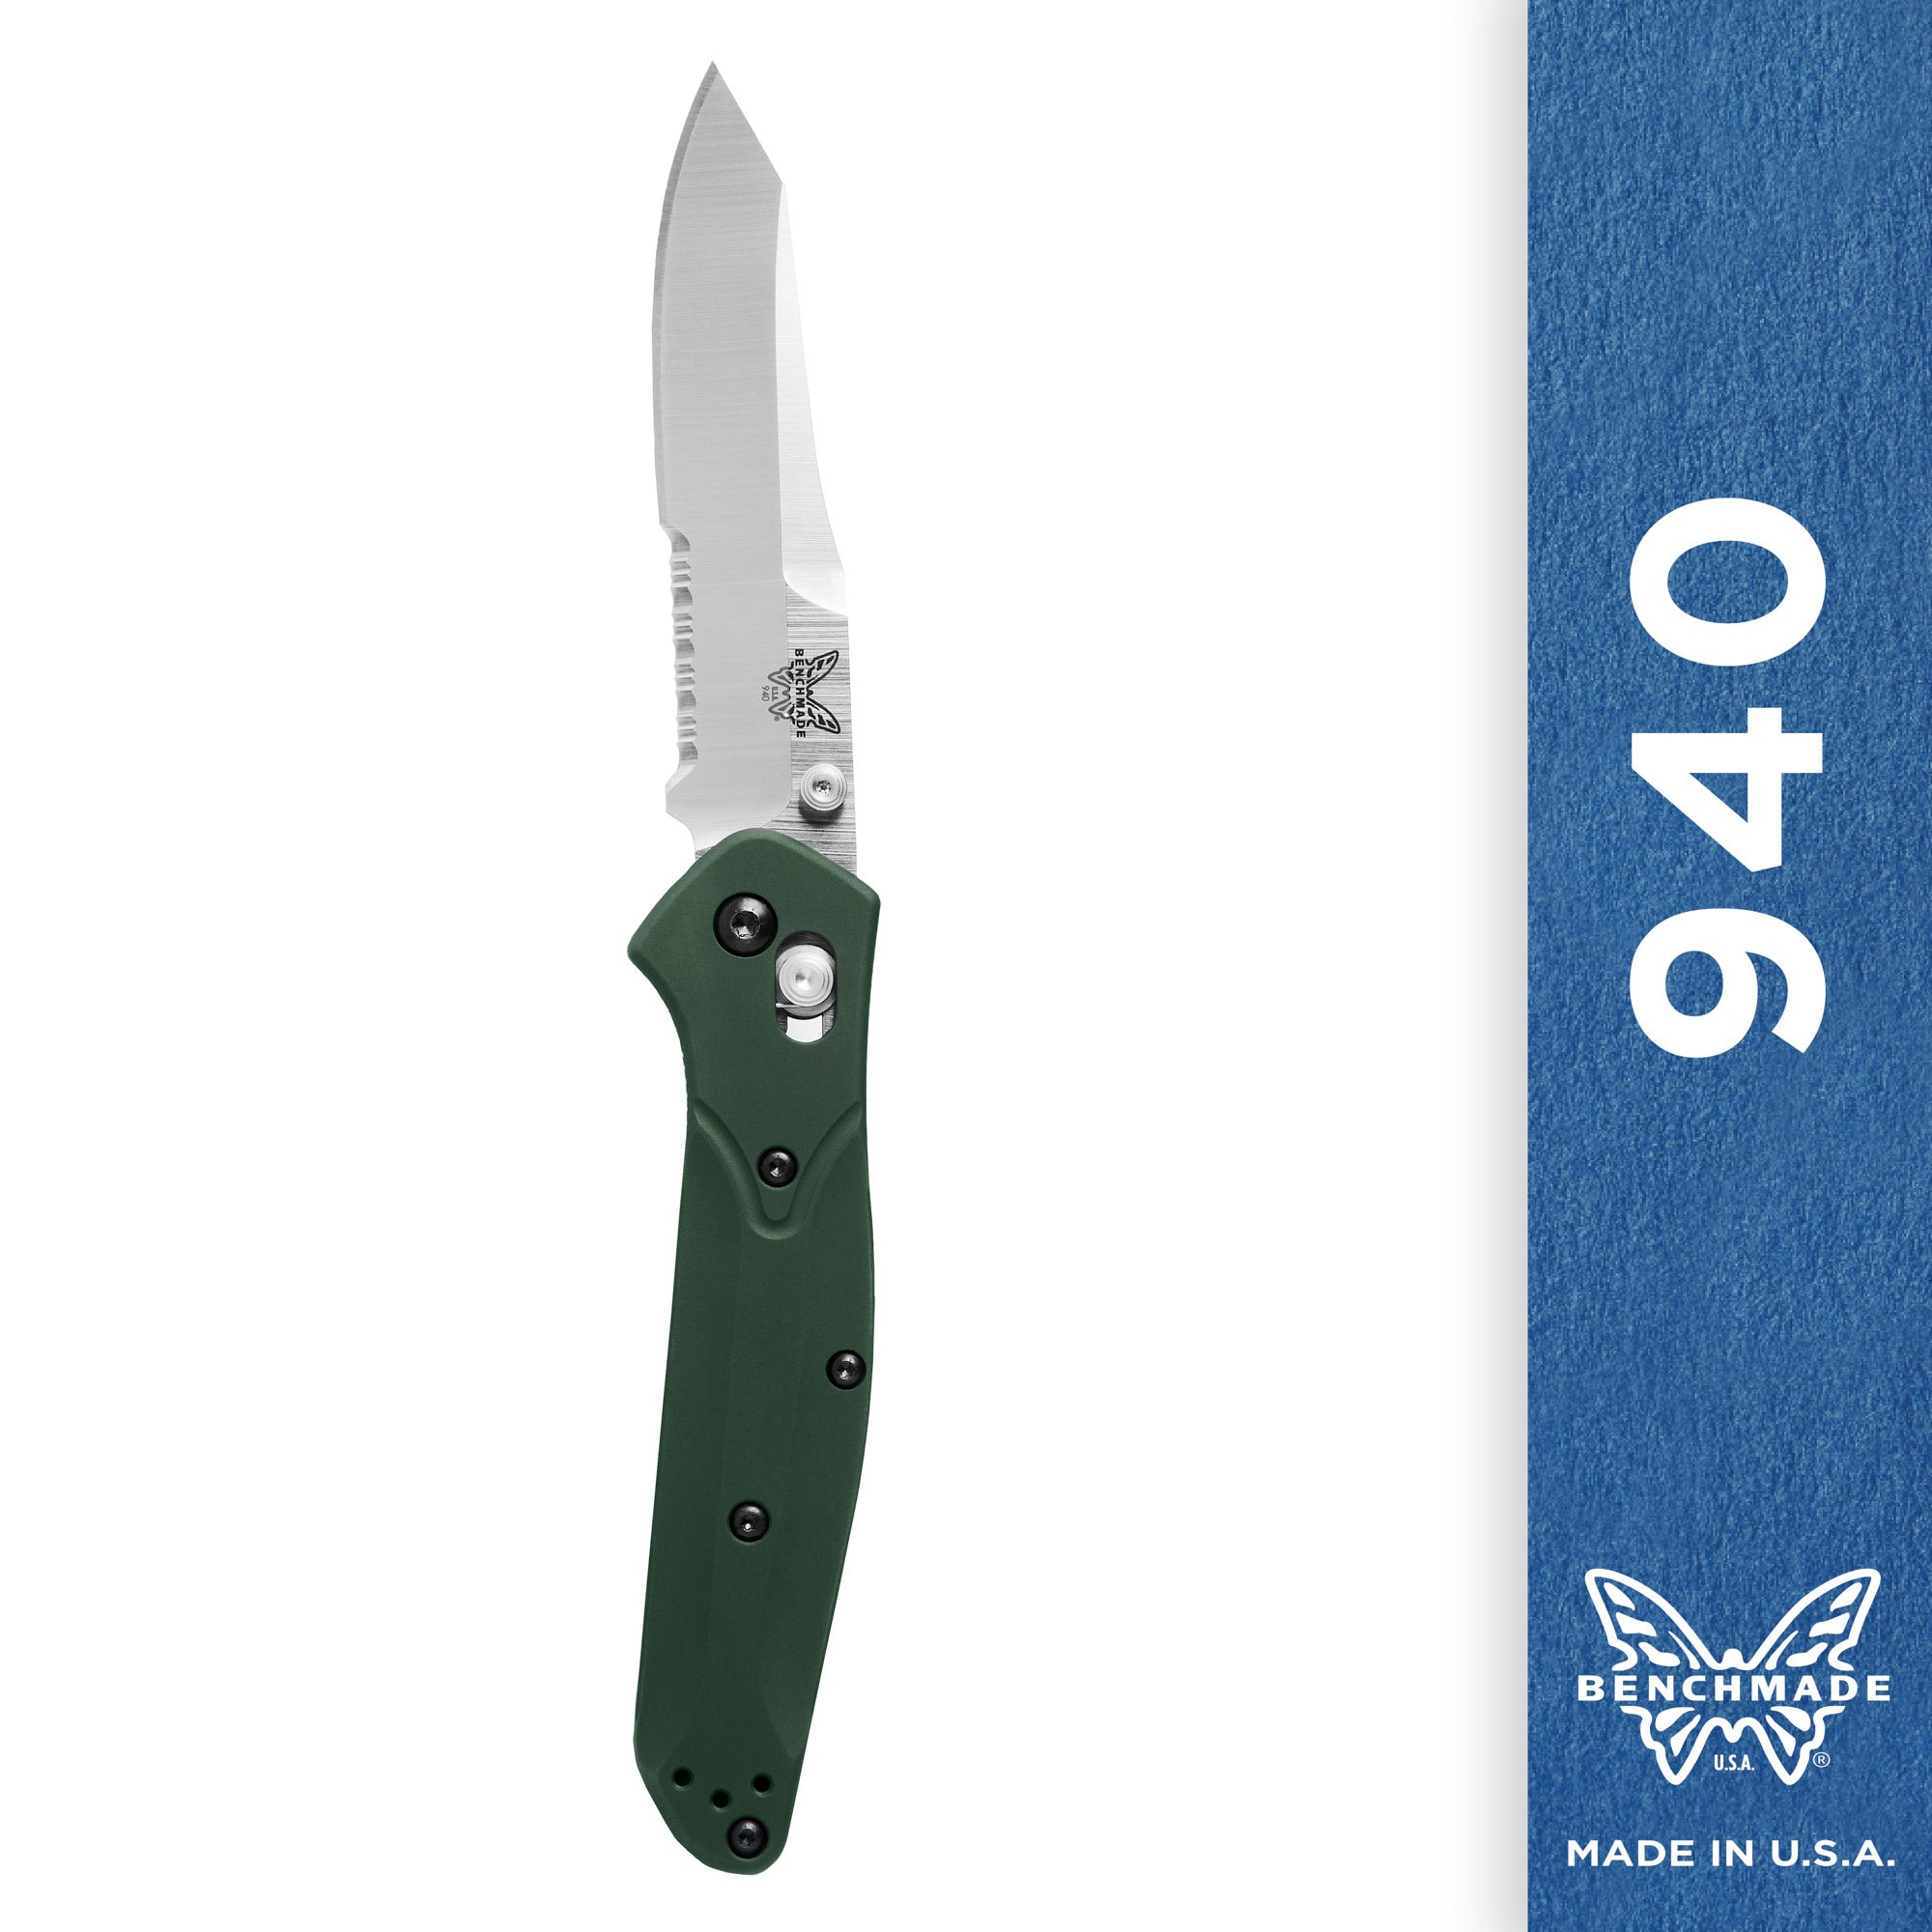 Benchmade Knife 940S ComboEdge Satin Blade Green Handle by Benchmade